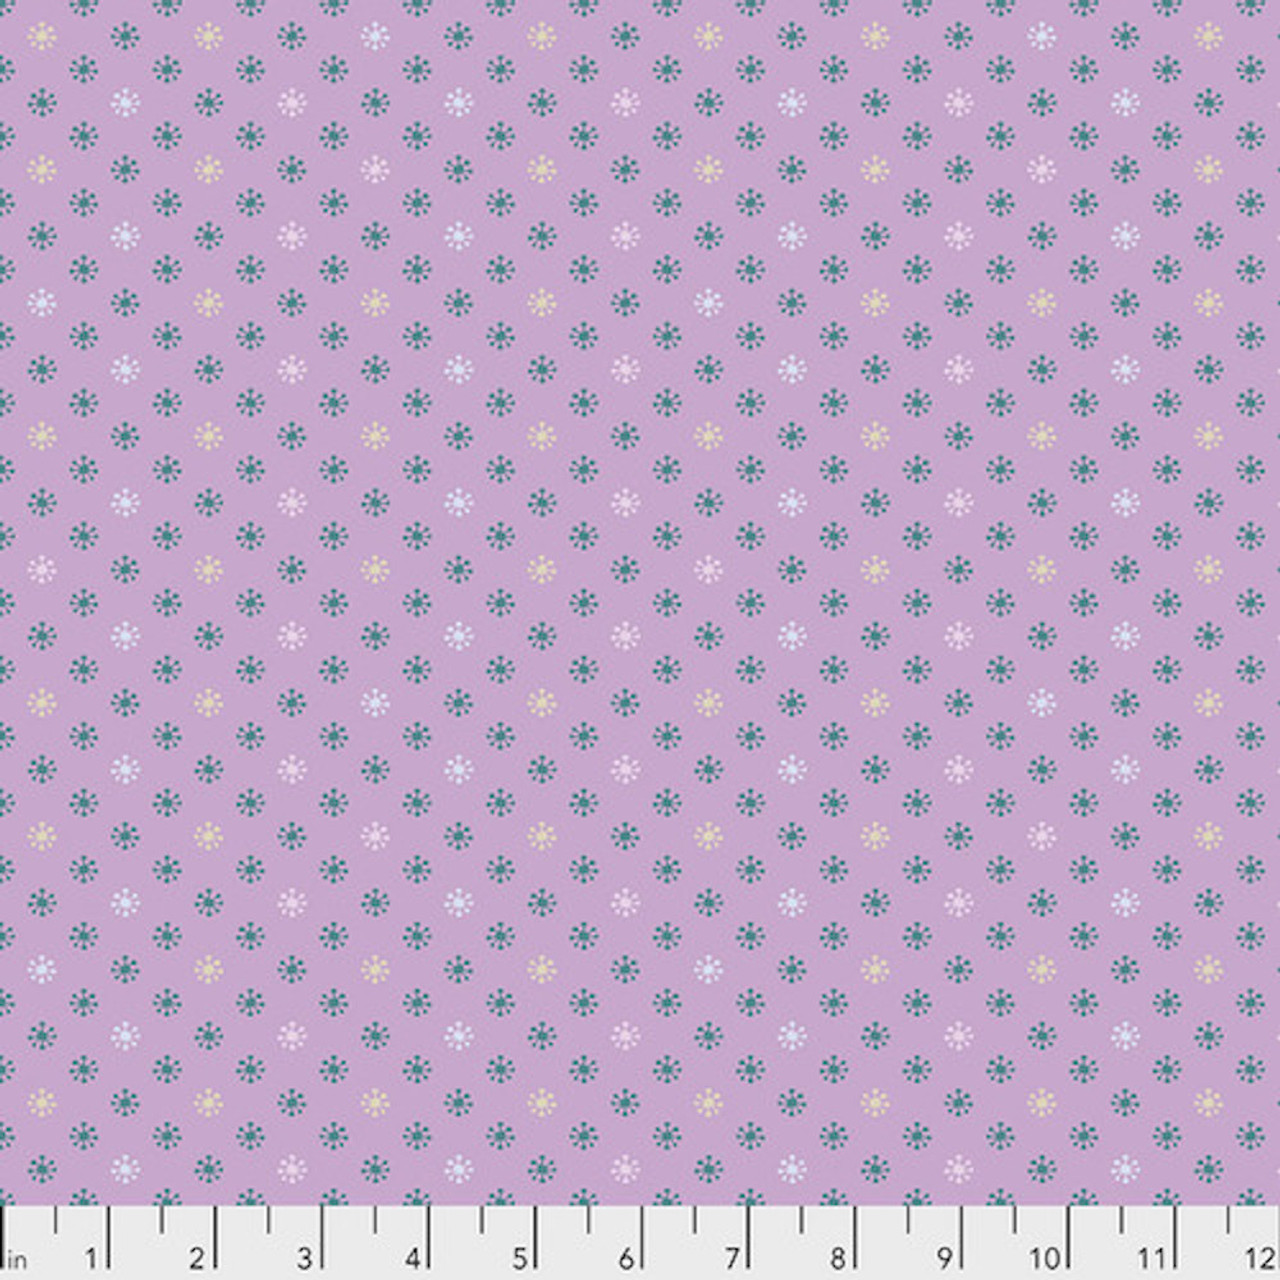 Kathy Doughty PWMO037 Seeds & Stems Sweet Gum Lavender Cotton Fabric By Yard